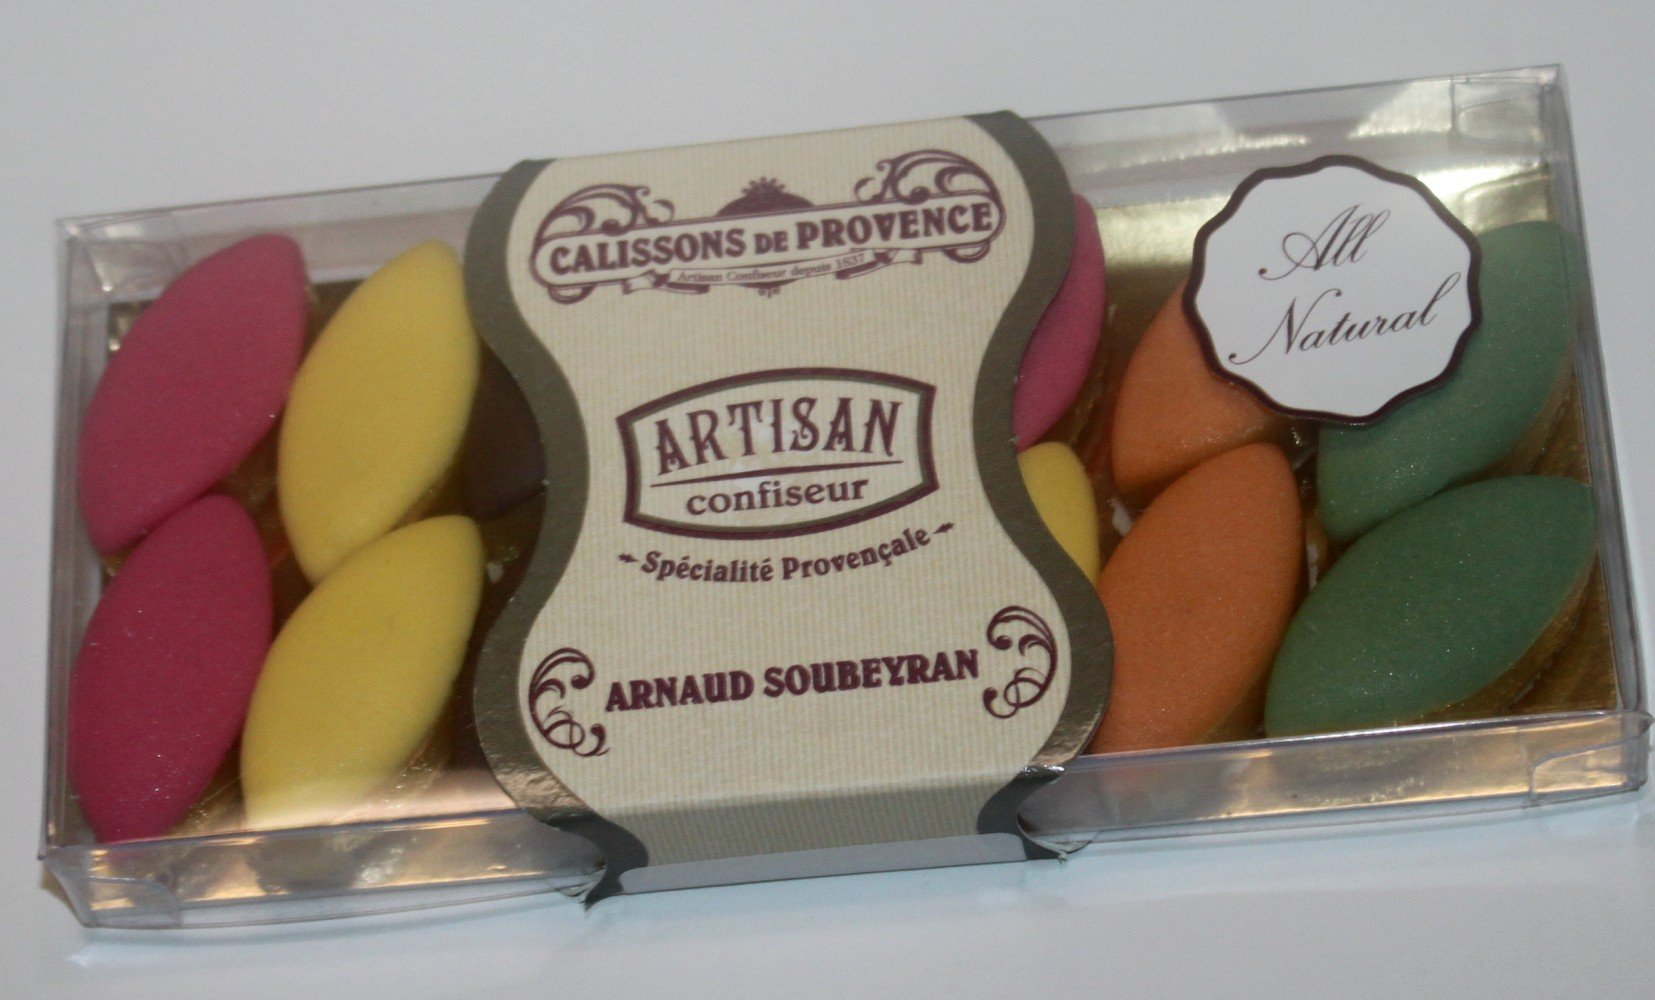 Calissons de Provence Assorted Fruit Flavored All Natural imported from Arnaud Soubeyran France - 14 small pieces, 70 grams Gift Box